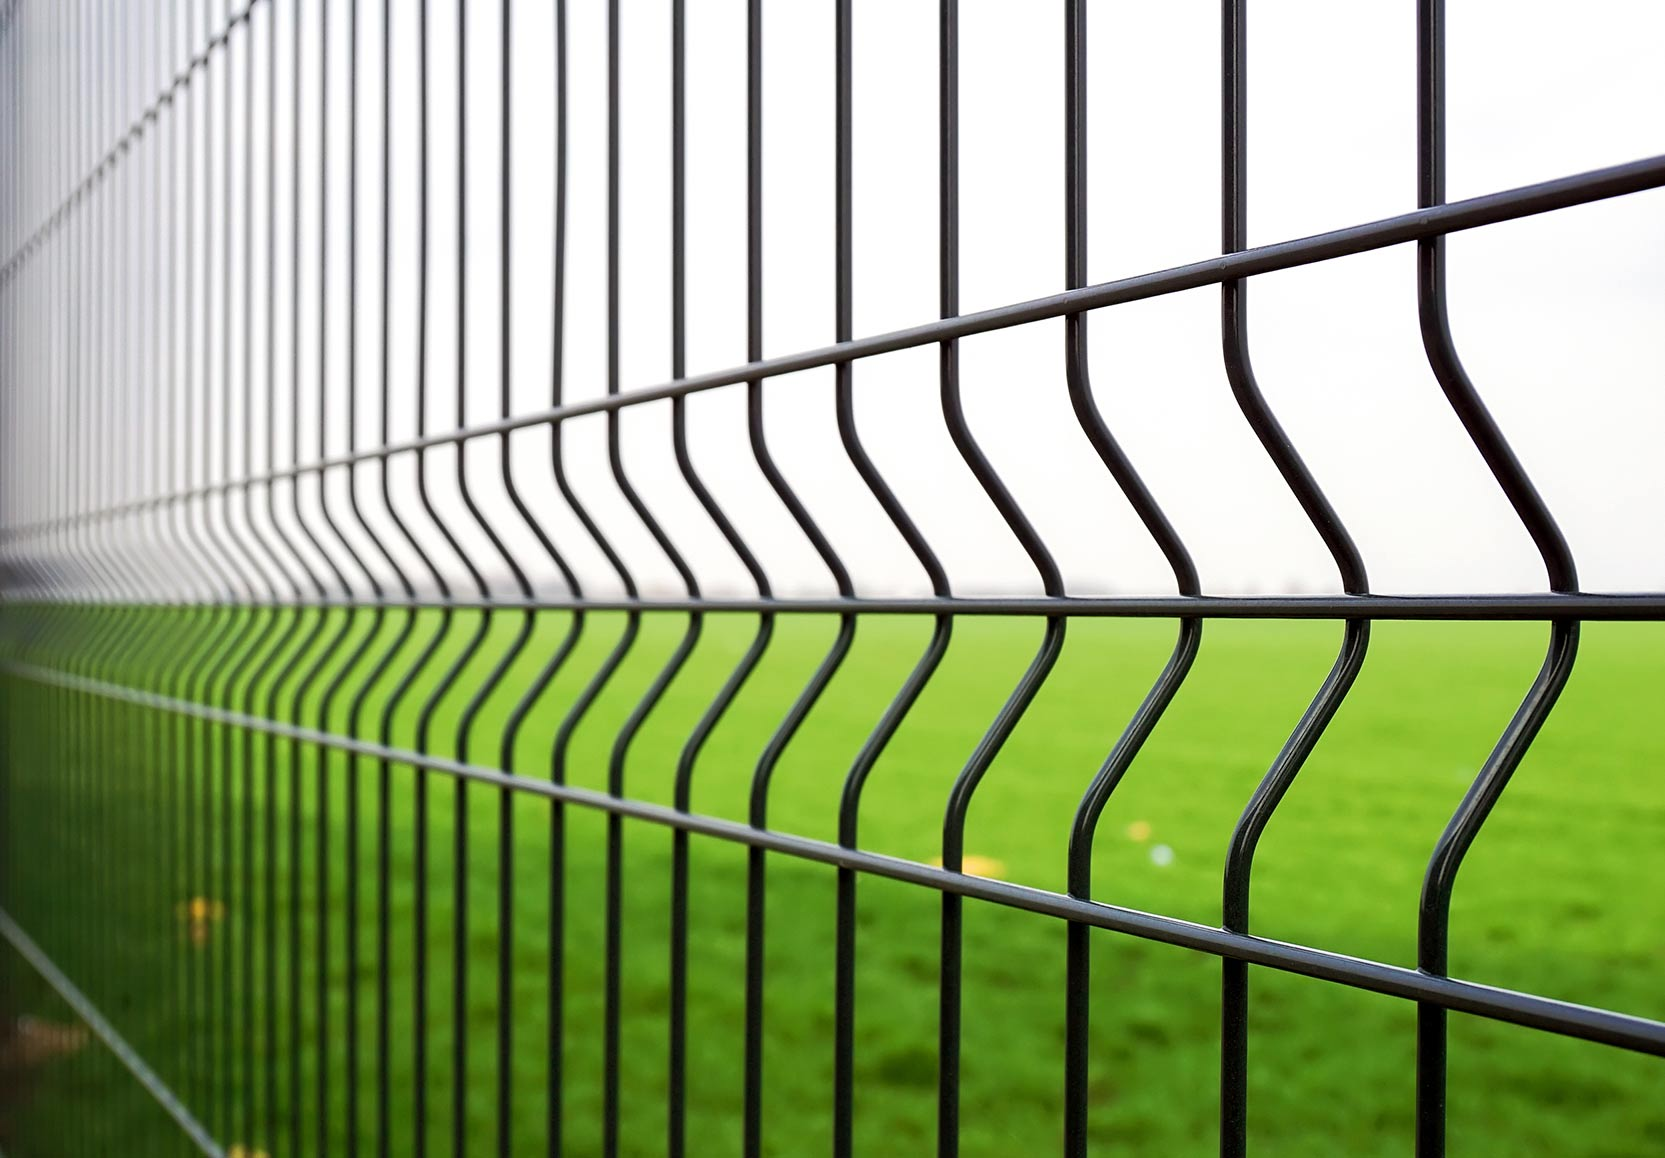 Gray Fence Graphic